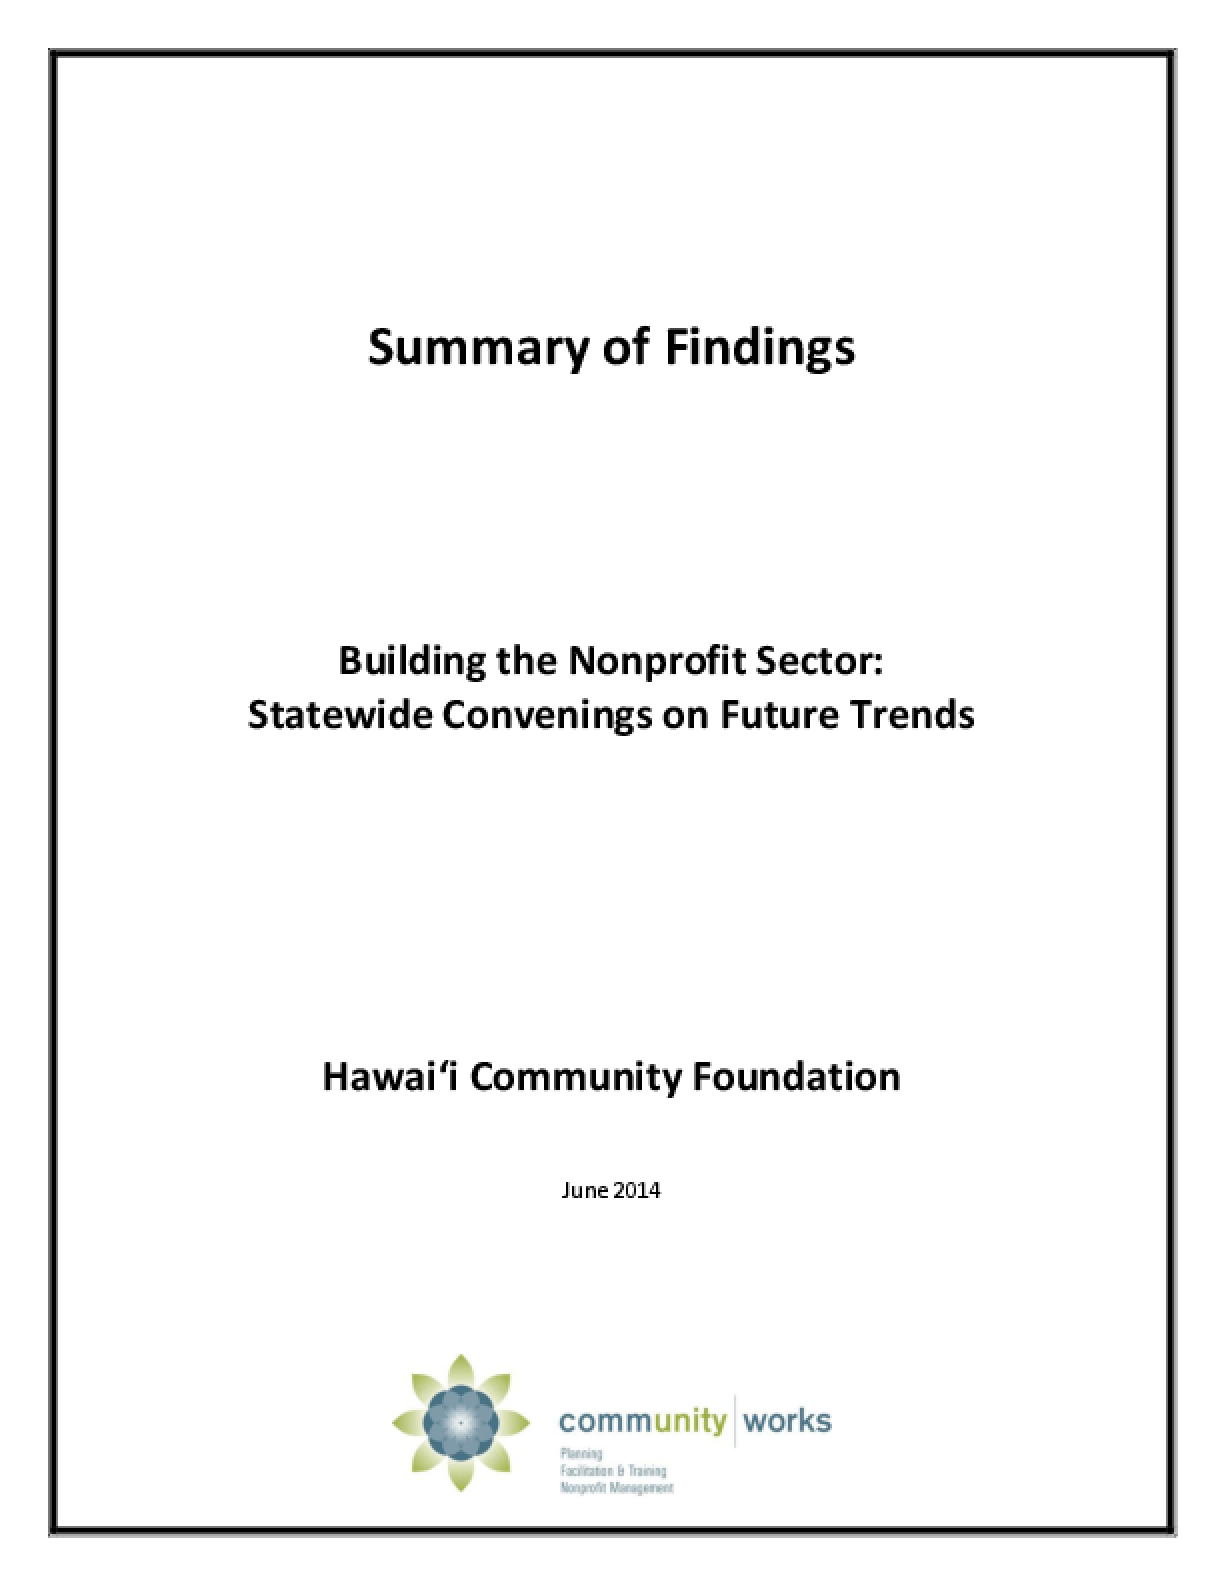 Building the Nonprofit Sector: Statewide Convenings on Future Trends